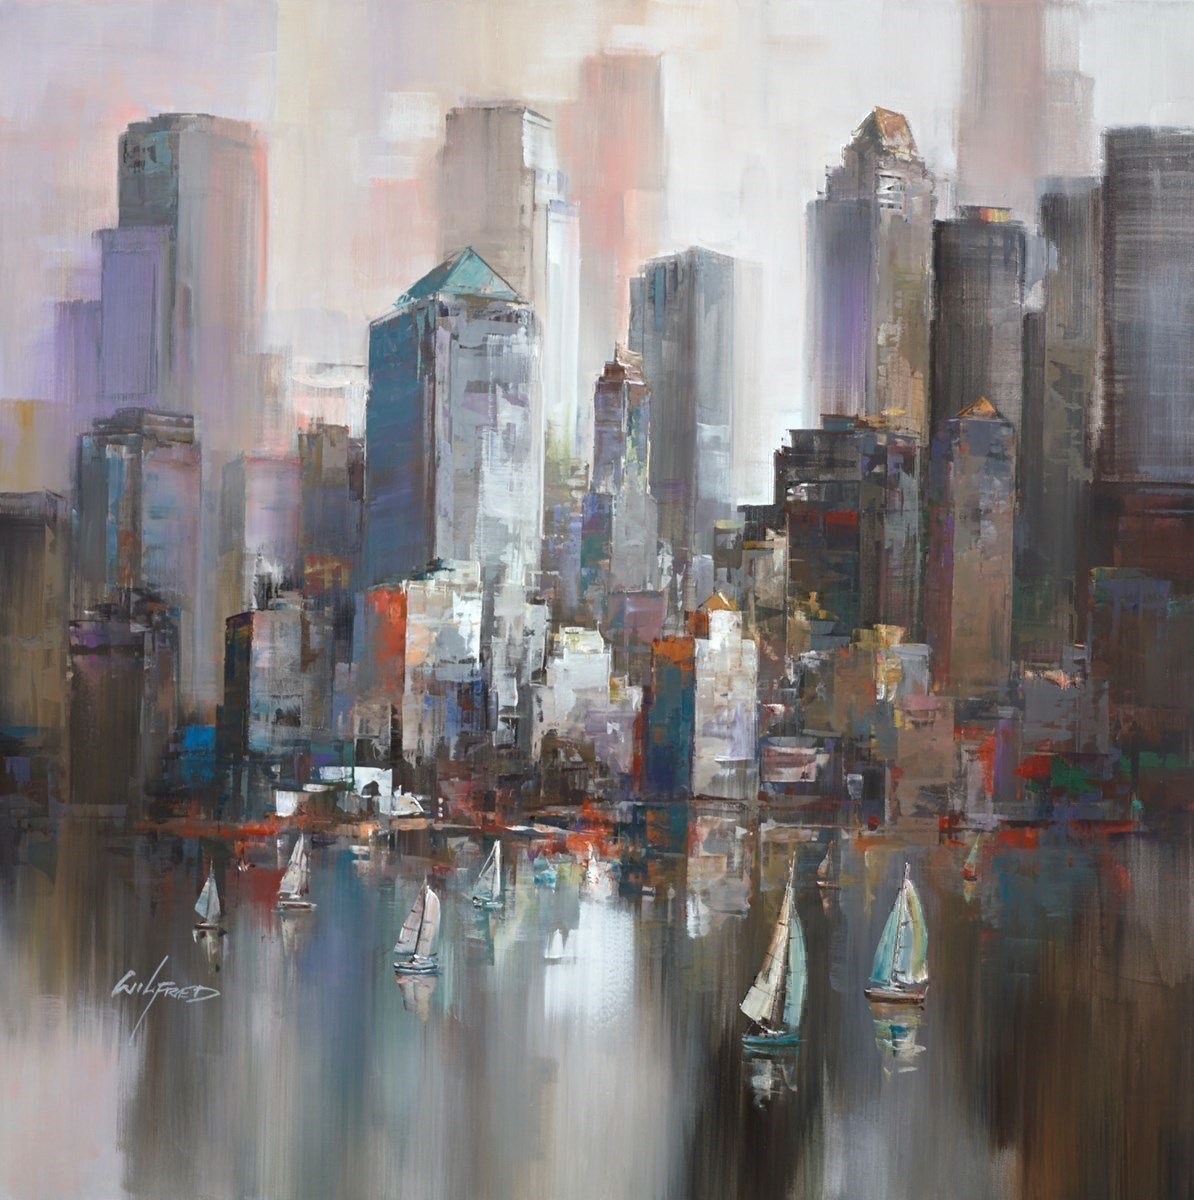 Looking across the city IV by Wilfred -  sized 38x38 inches. Available from Whitewall Galleries